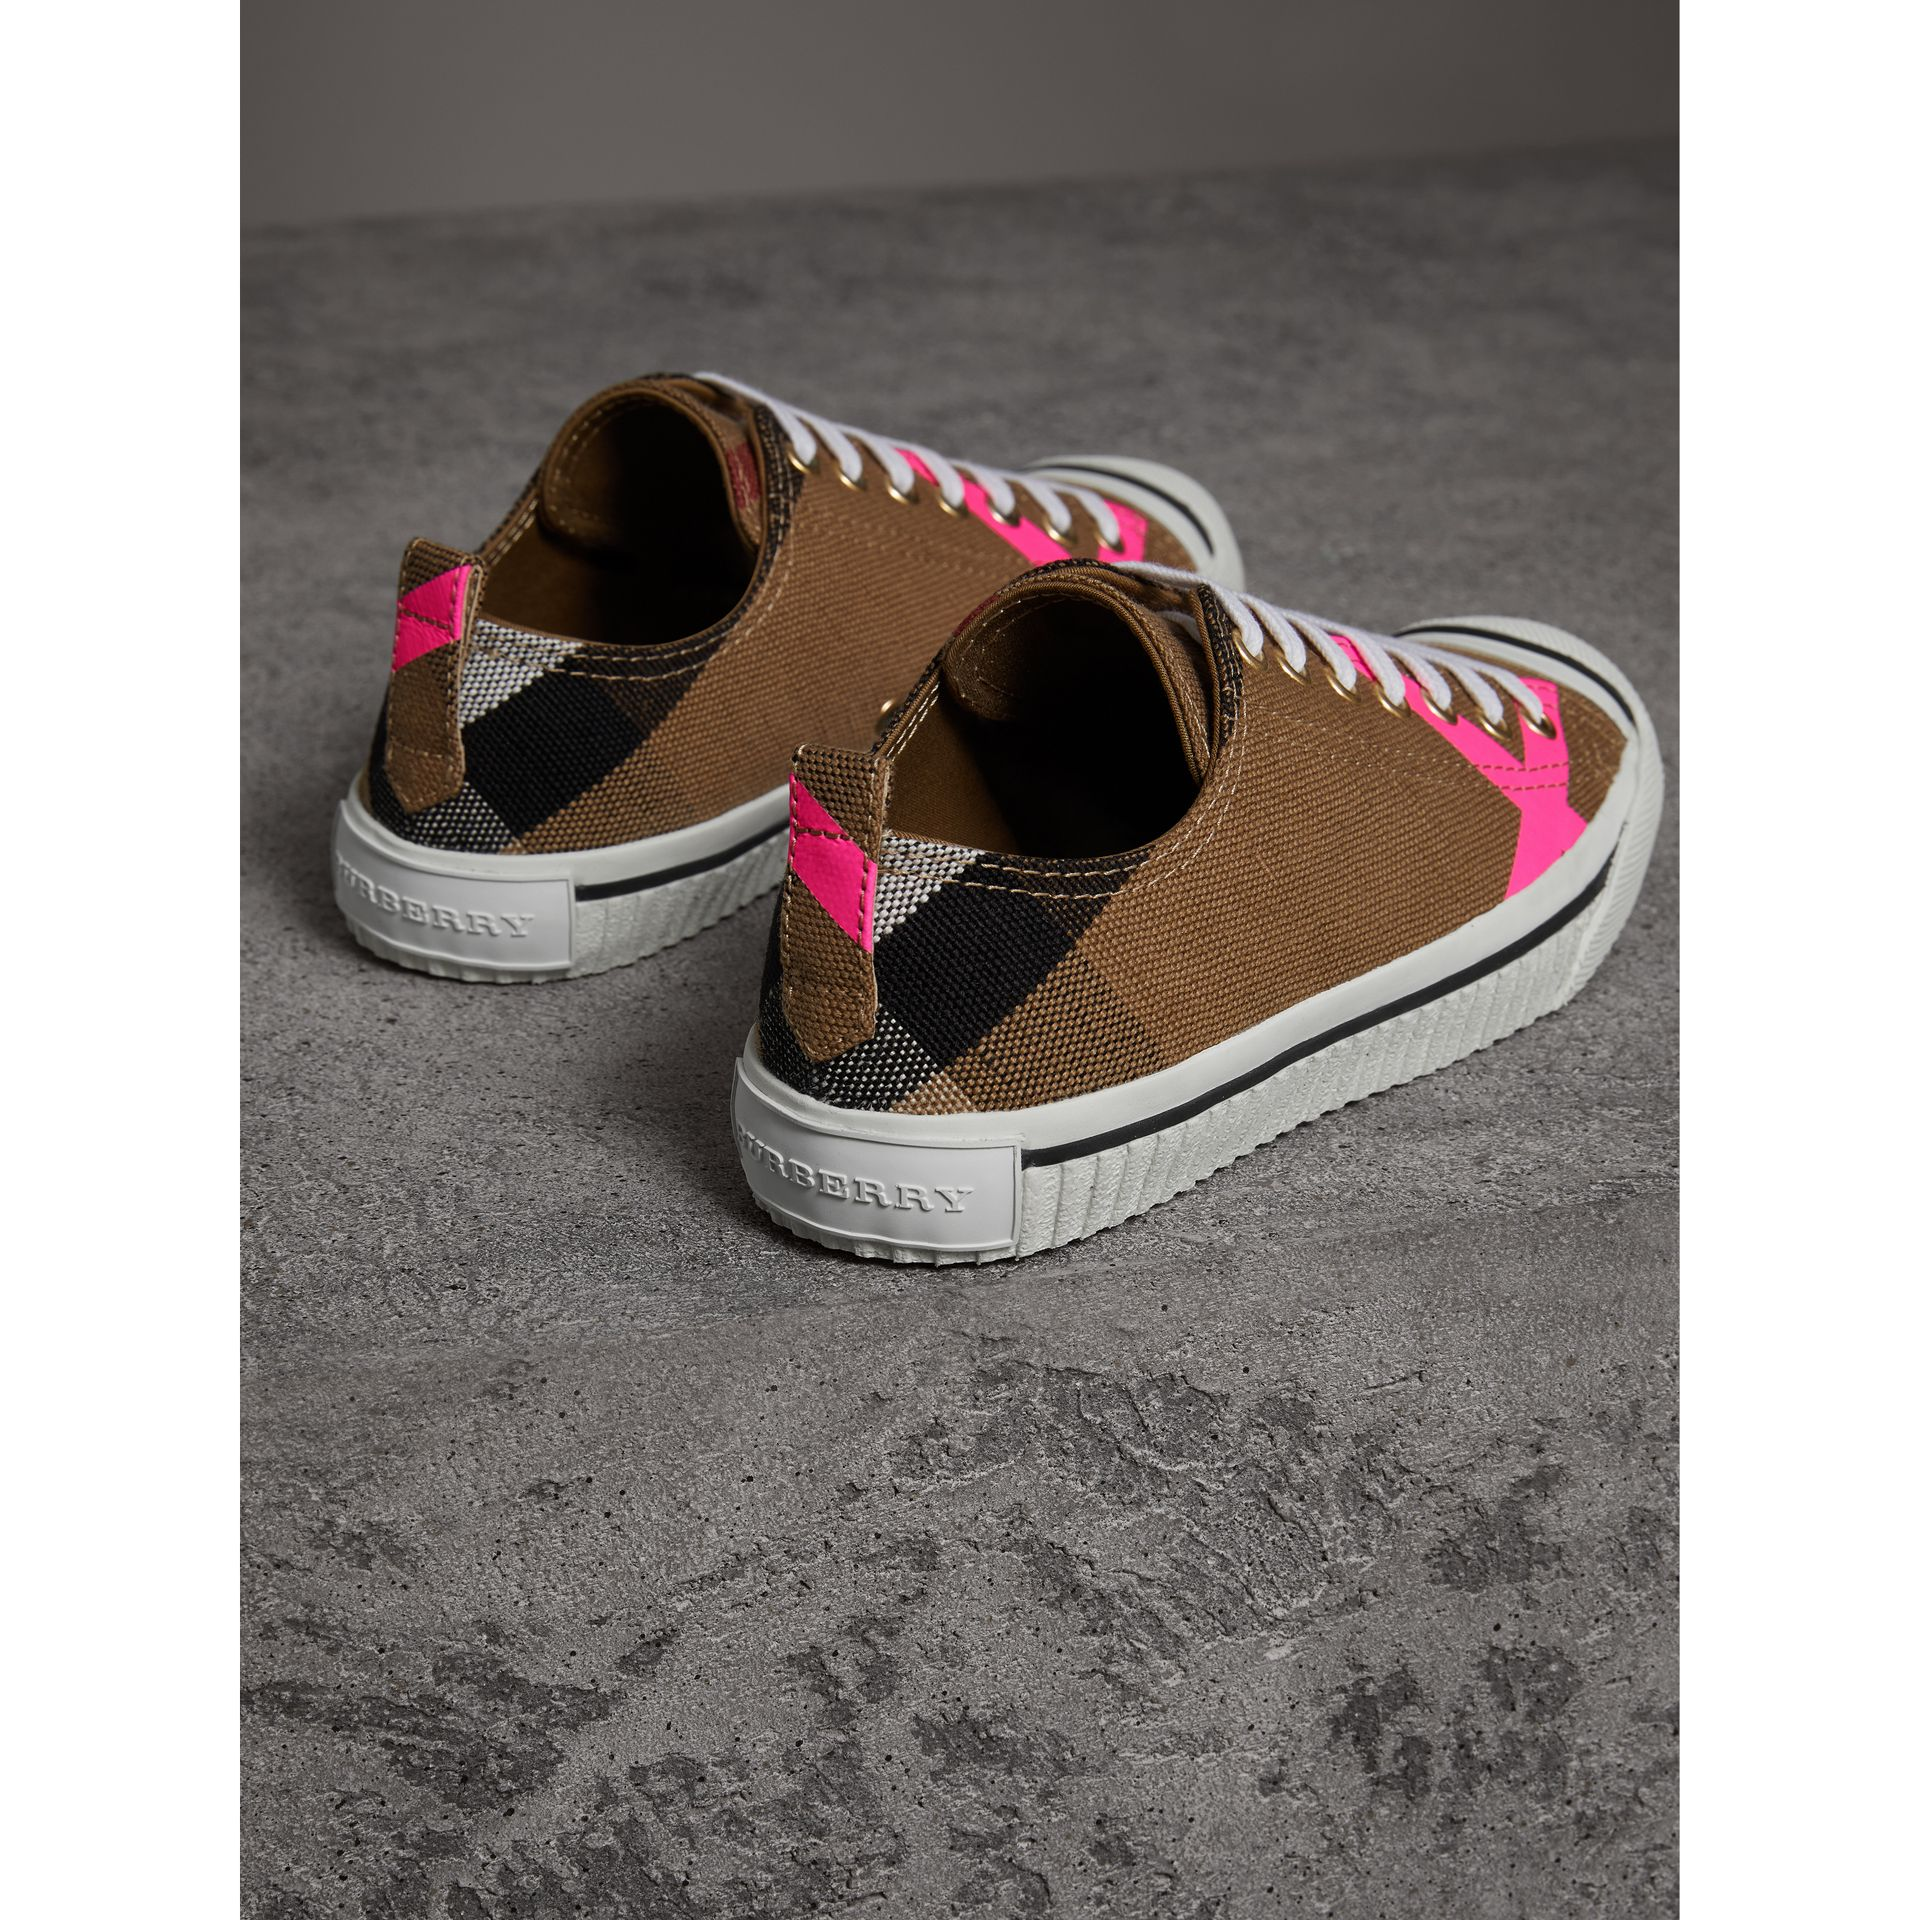 Canvas Check and Leather Sneakers in Classic/neon Pink - Women | Burberry - gallery image 3